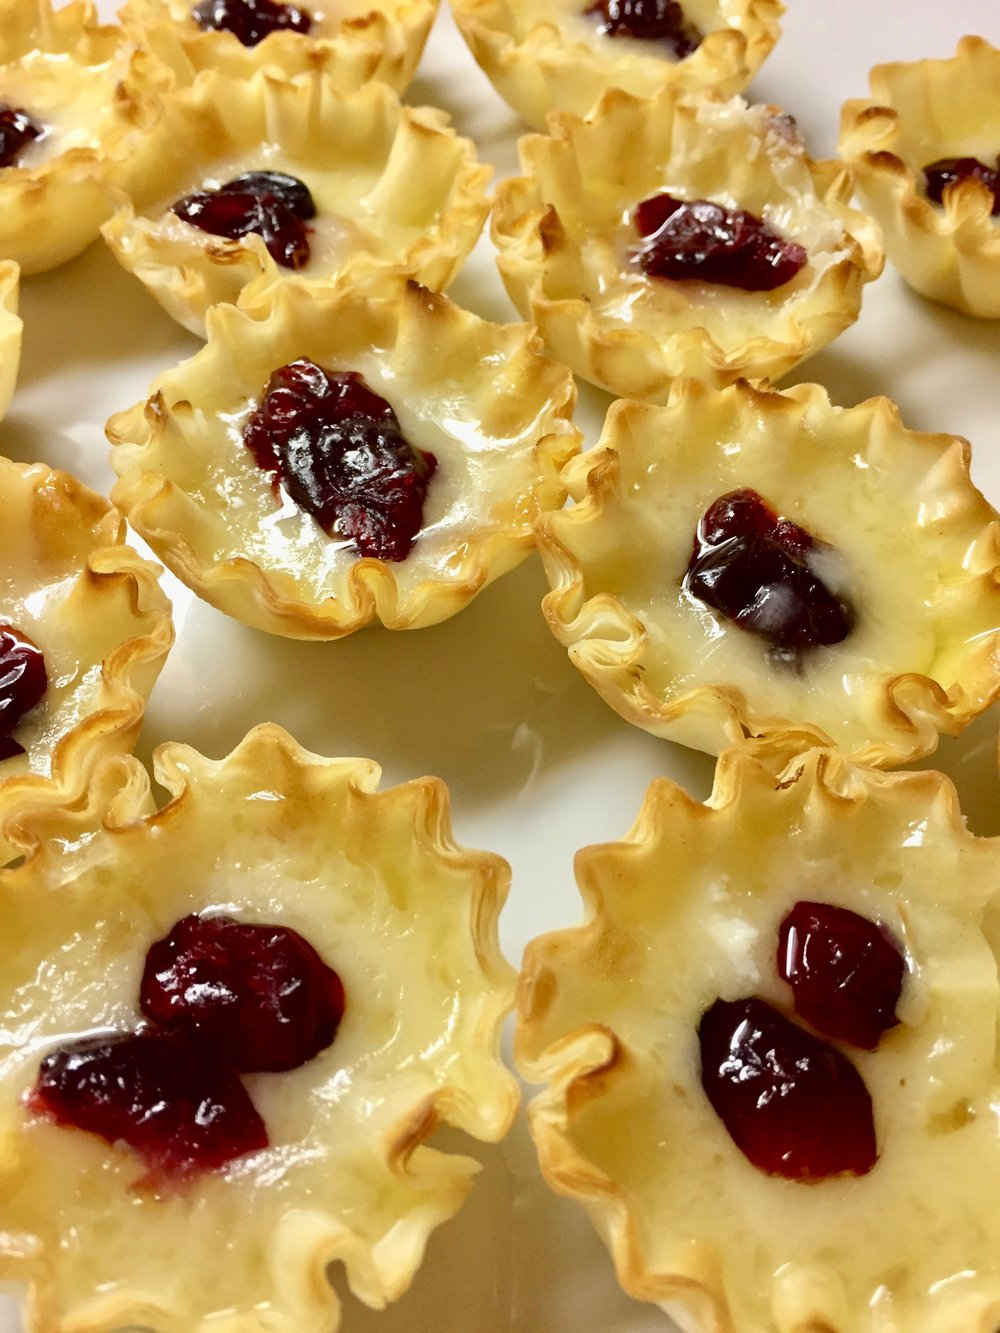 Brie and cranberry tartlets 2.jpg